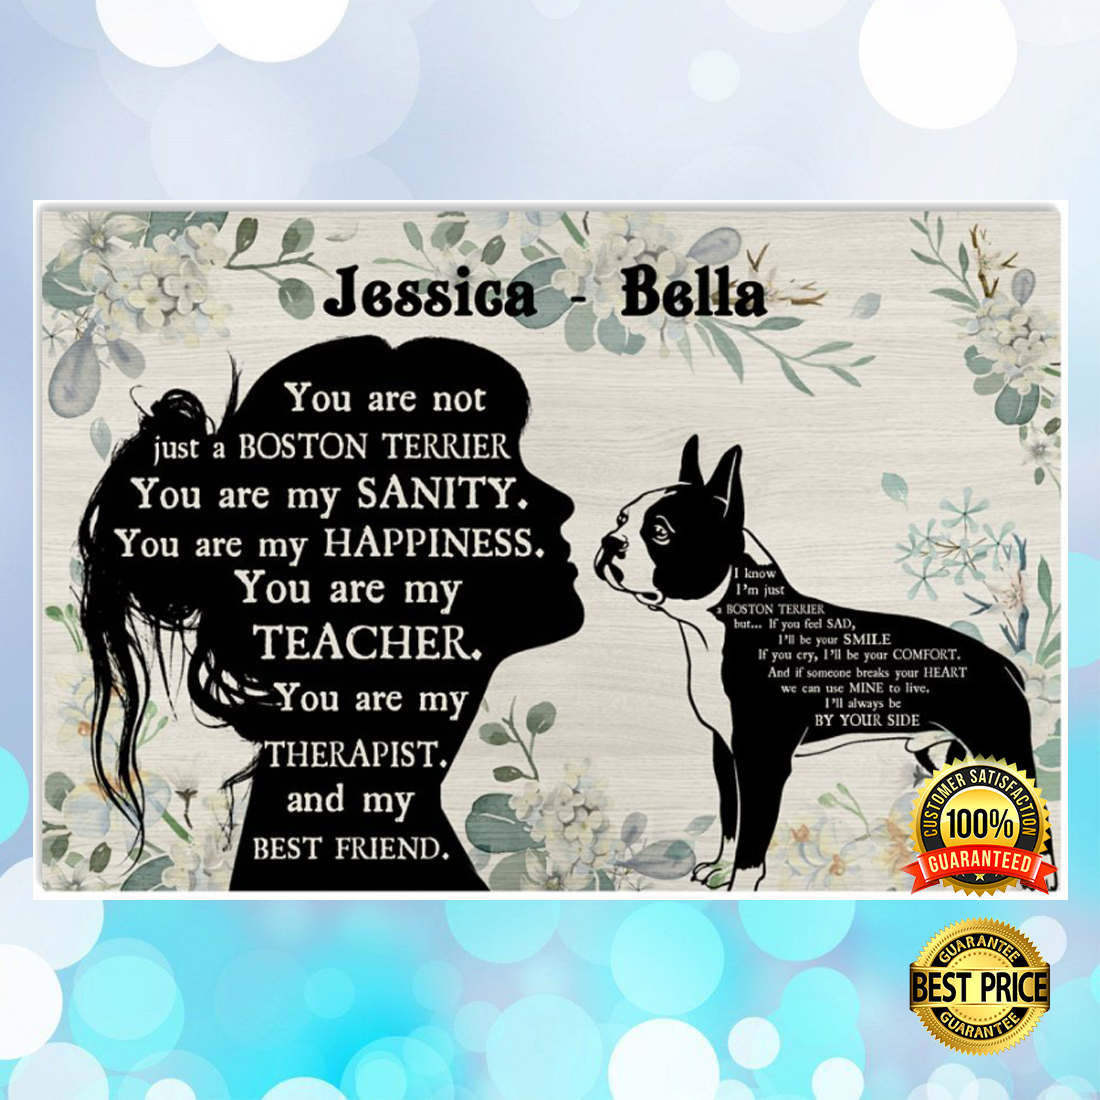 PERSONALIZED GIRL AND BOSTON TERRIER YOU ARE NOT JUST A BOSTON TERRIER POSTER 6